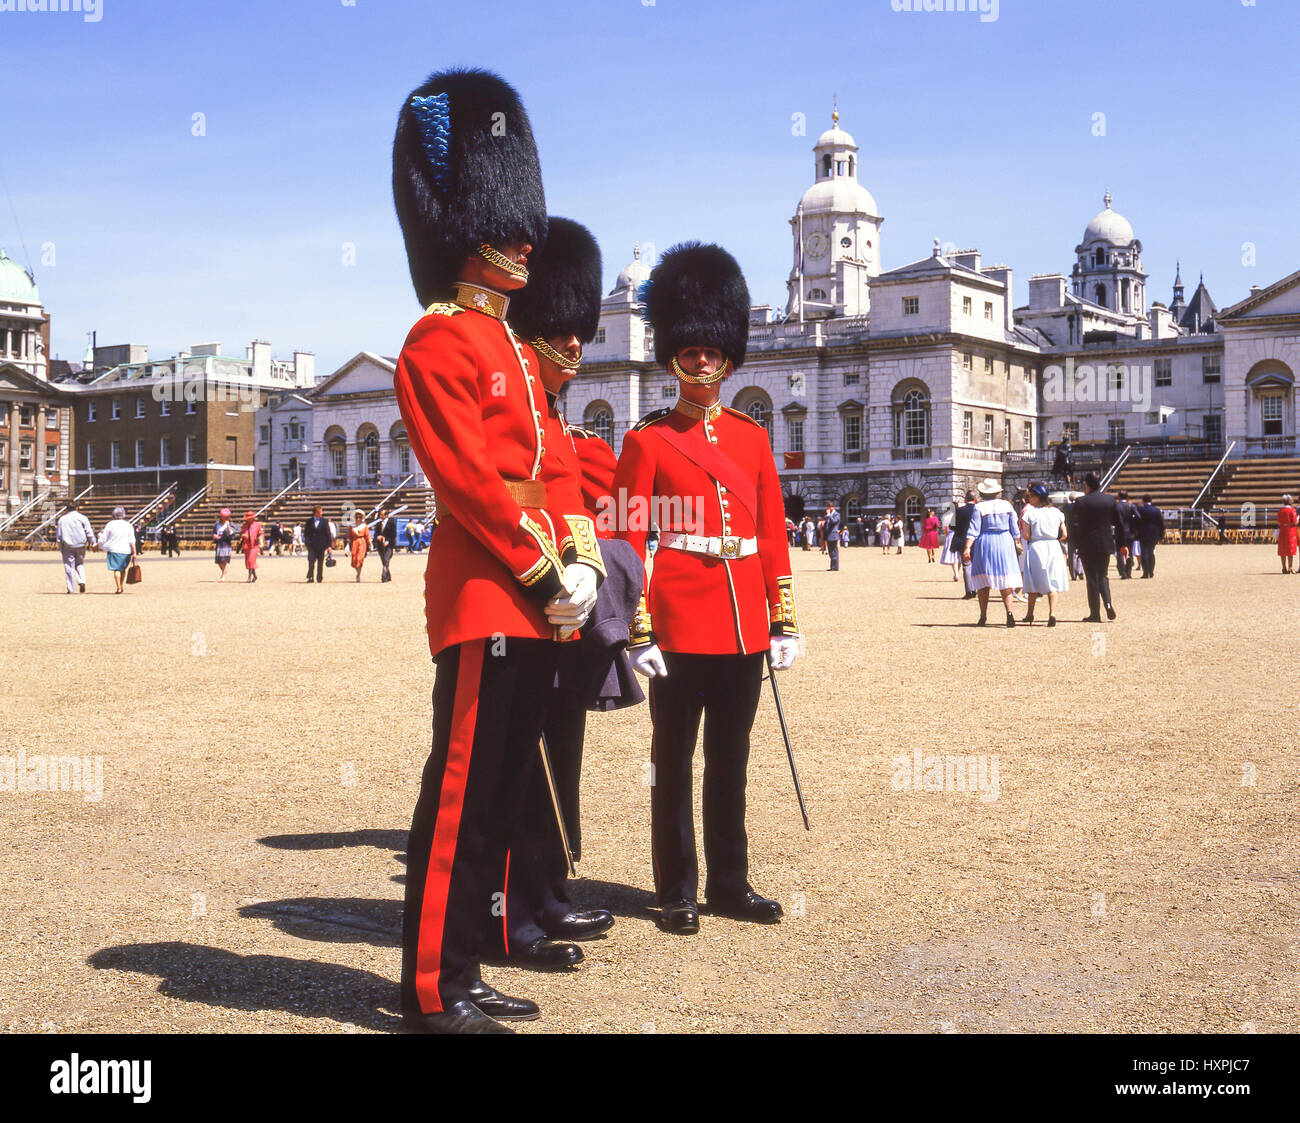 Gardes irlandais à la parade de la cérémonie des couleurs, Horse Guards Parade, Whitehall, Greater Photo Stock